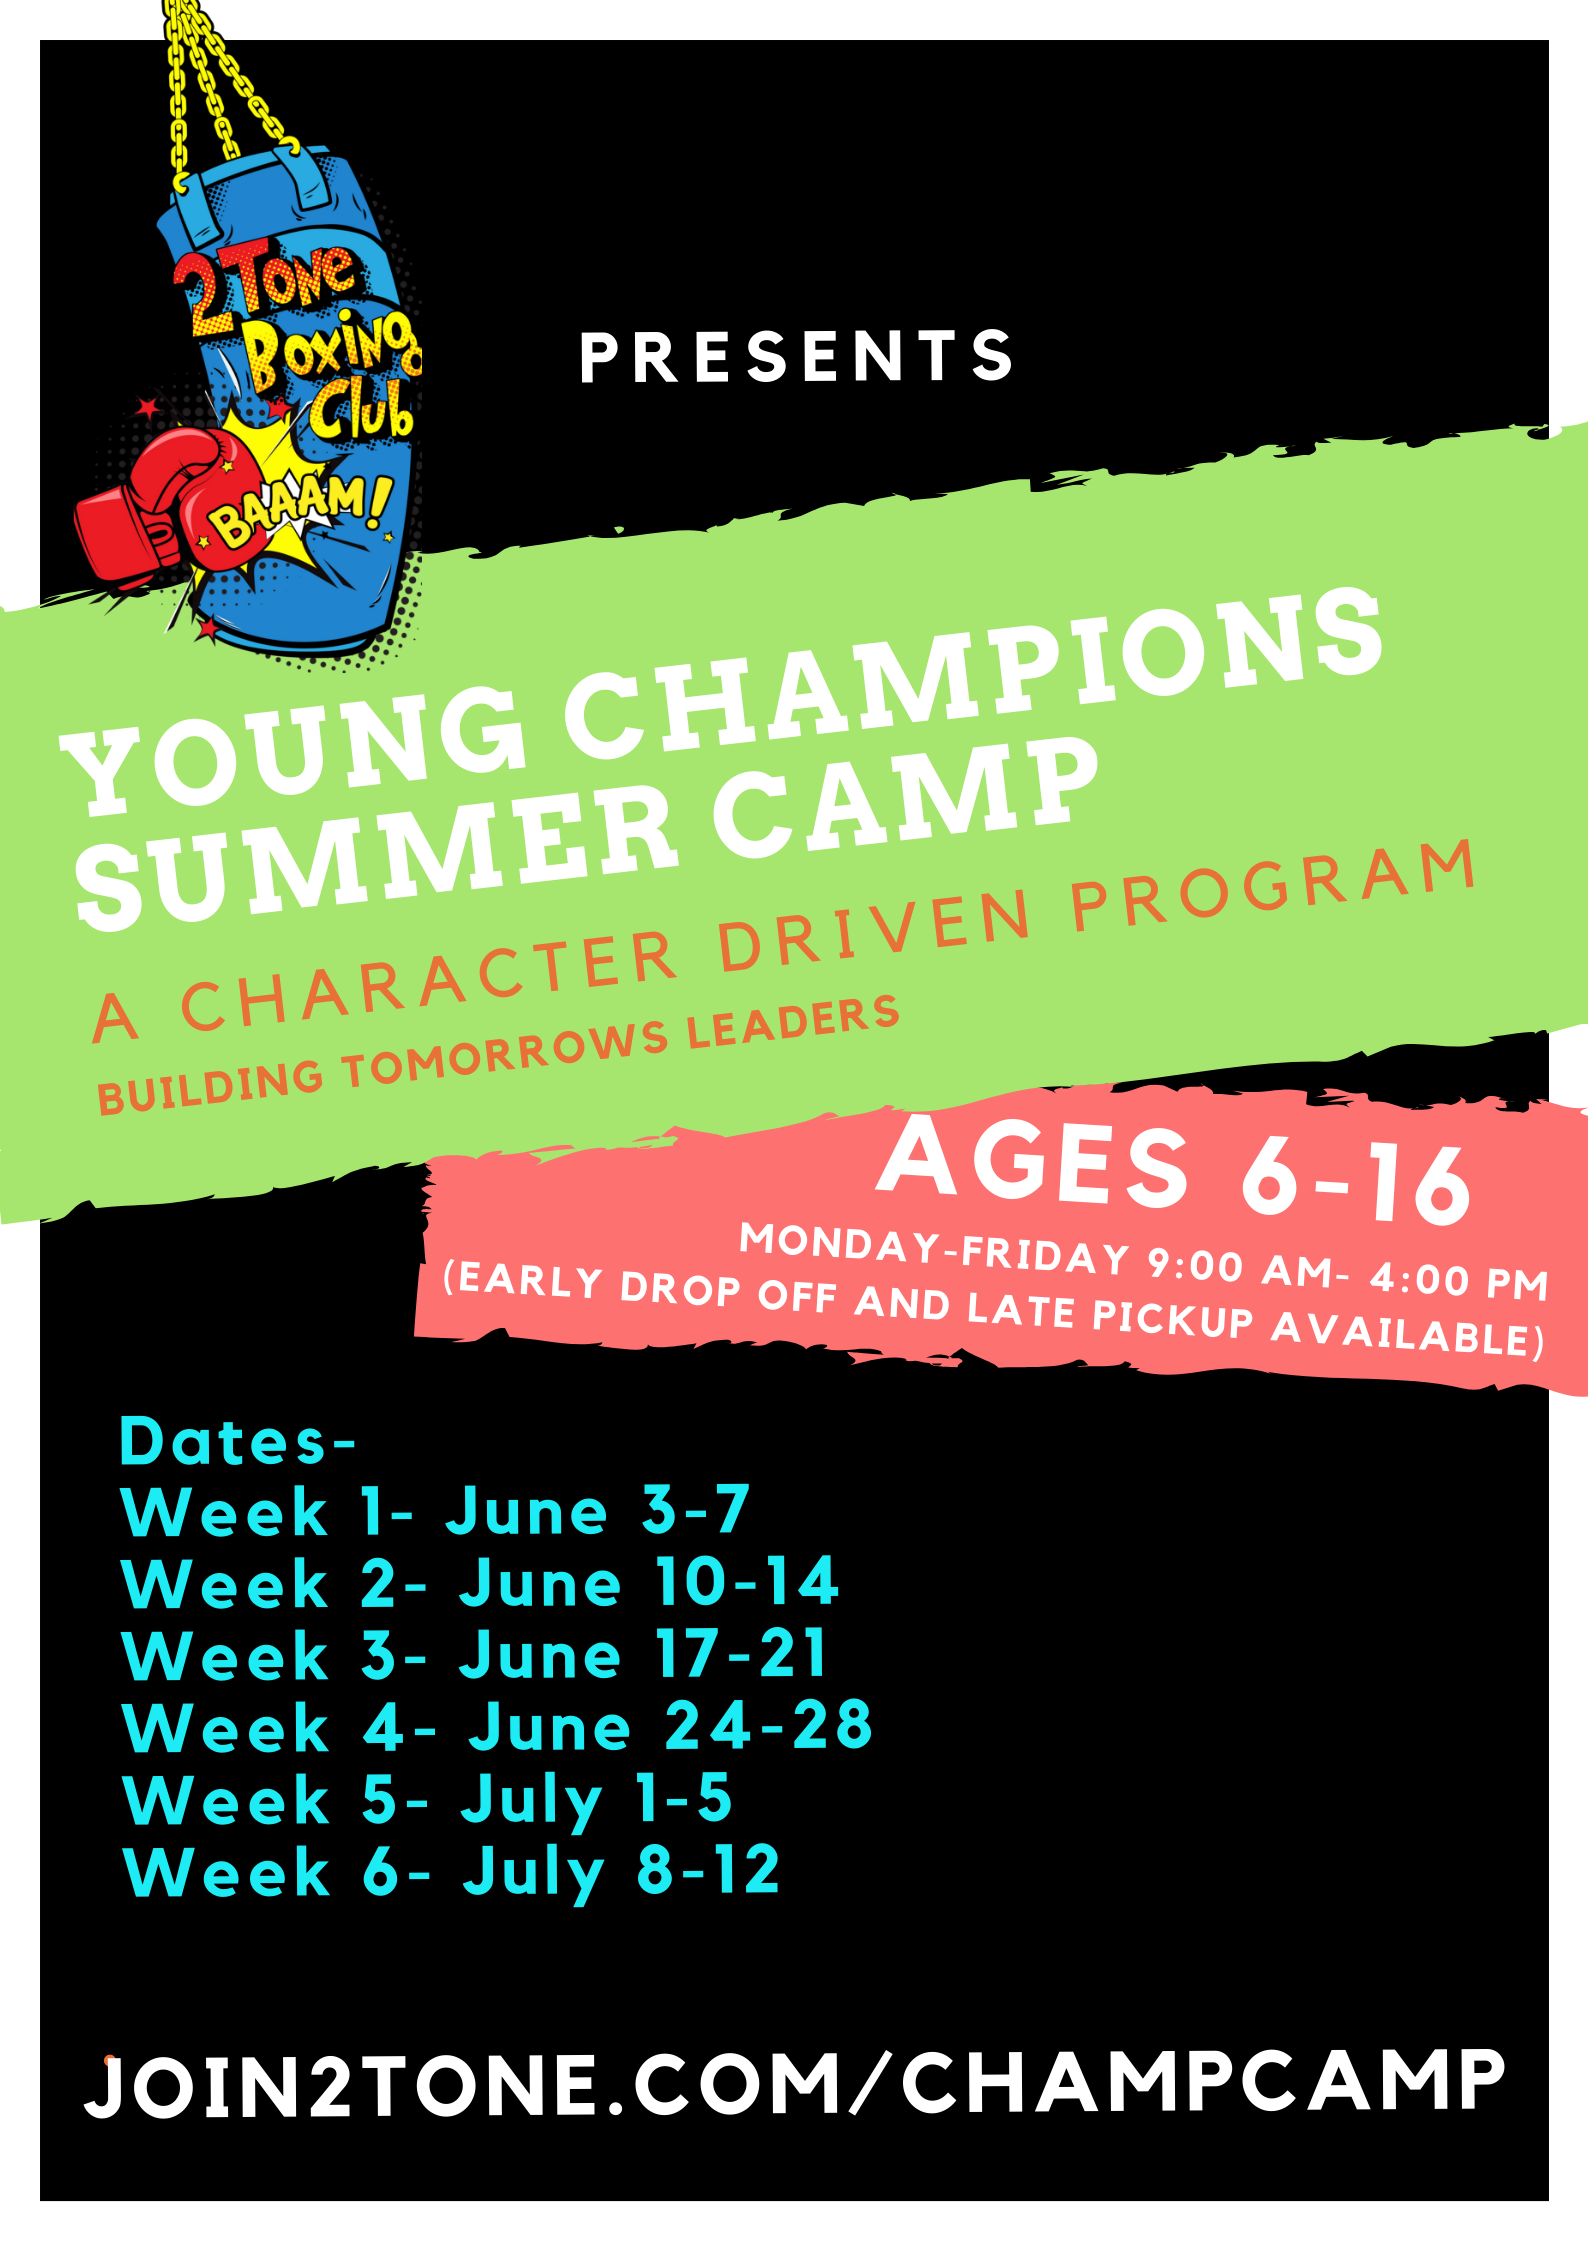 Young Champions Summer Camp